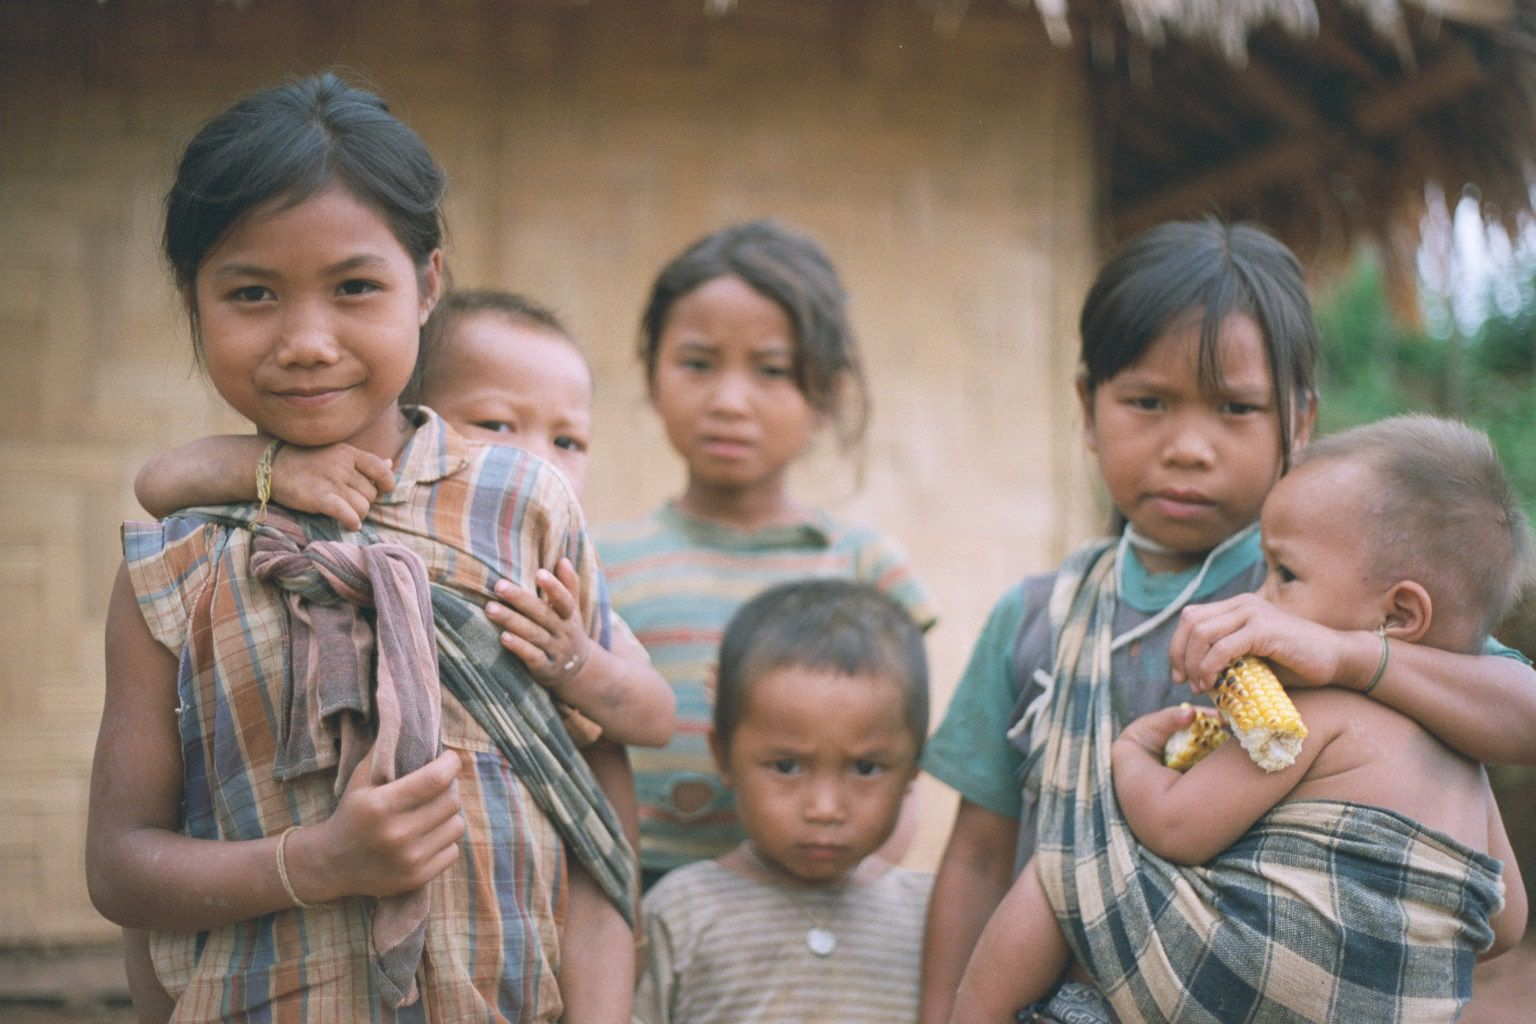 Project Sekong 2013: You Won't Find Many Dolls In Lao Homes